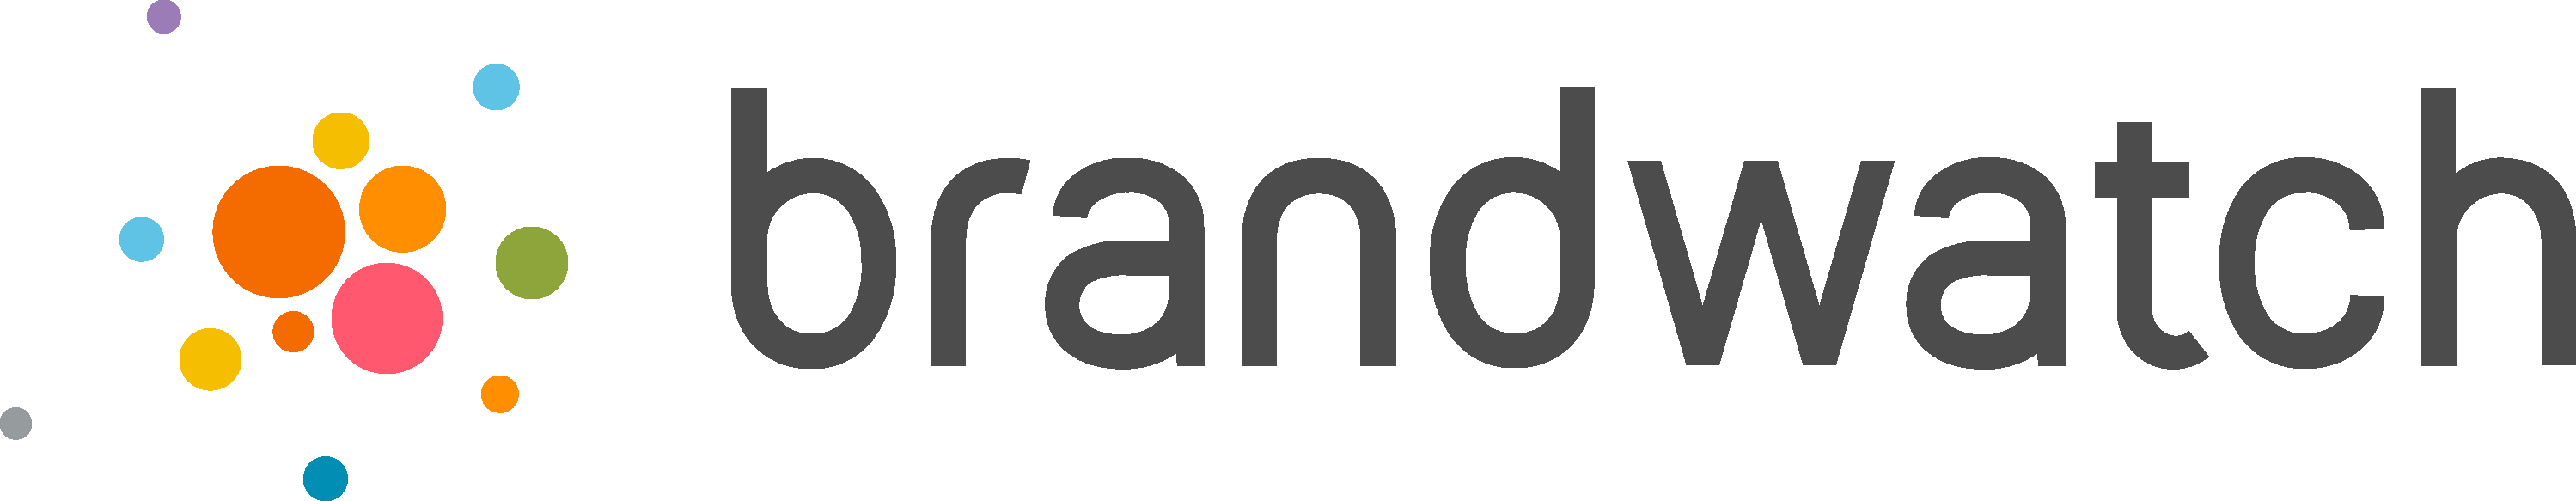 brandwatch-logo-transparent